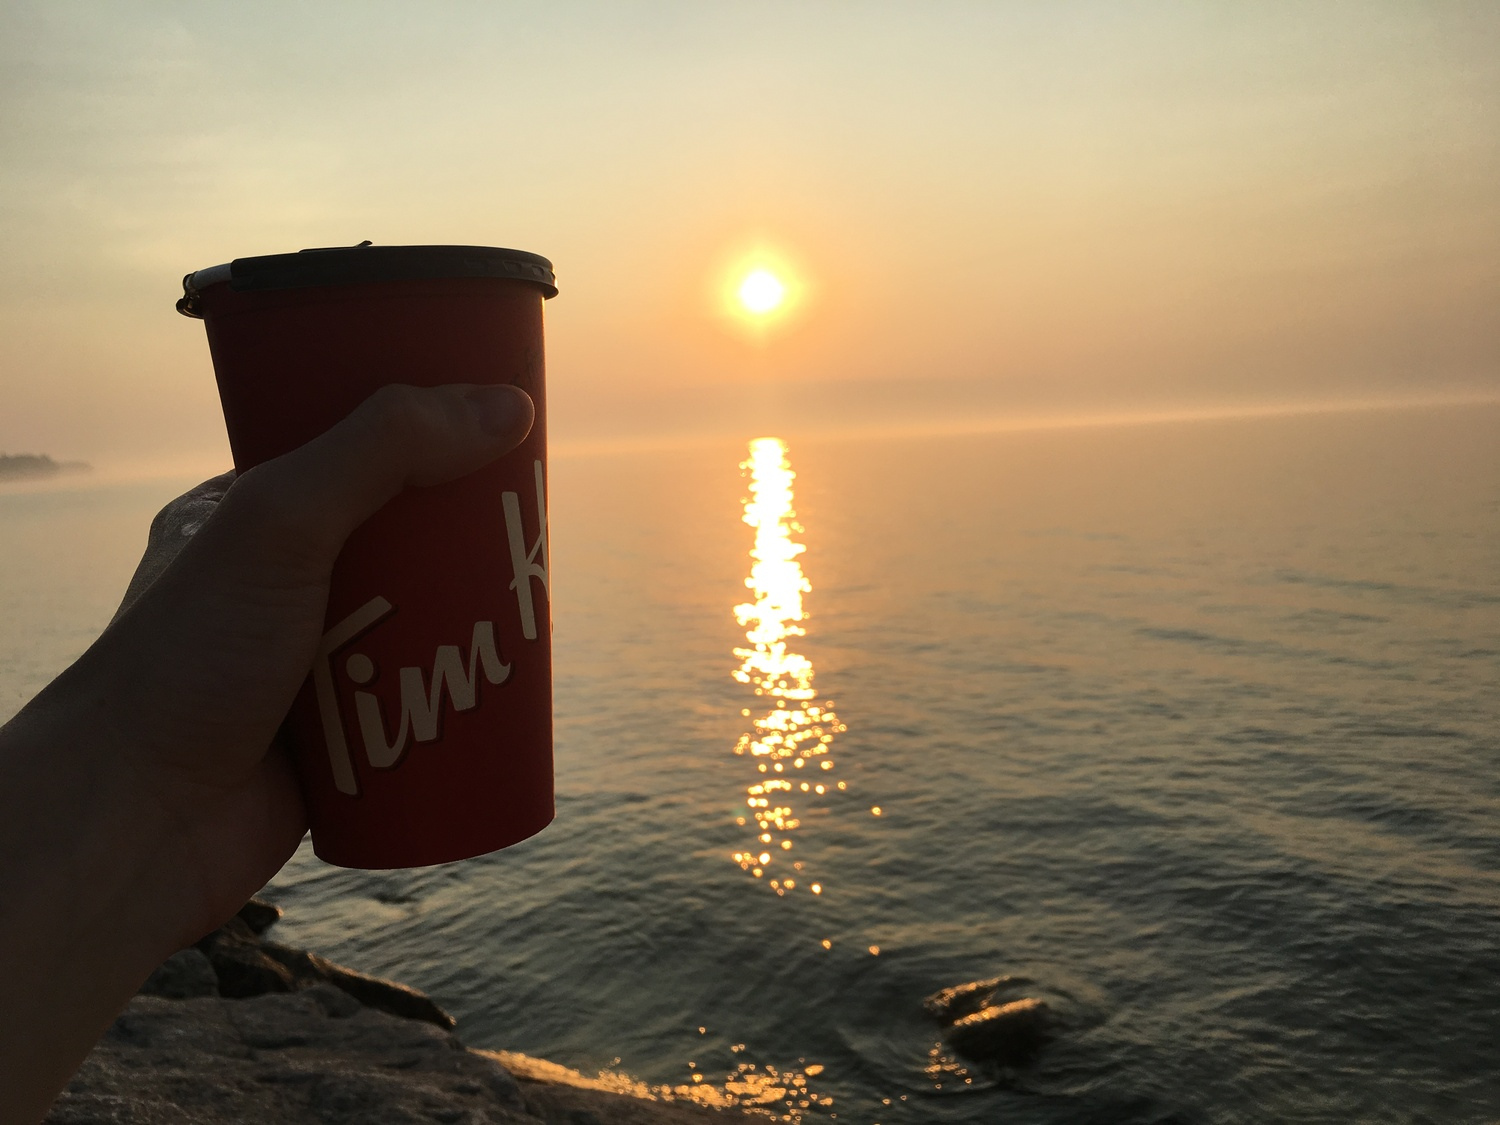 RIP Tim Hortons, Dunkin' simply wont suffice for this Canadian writer.